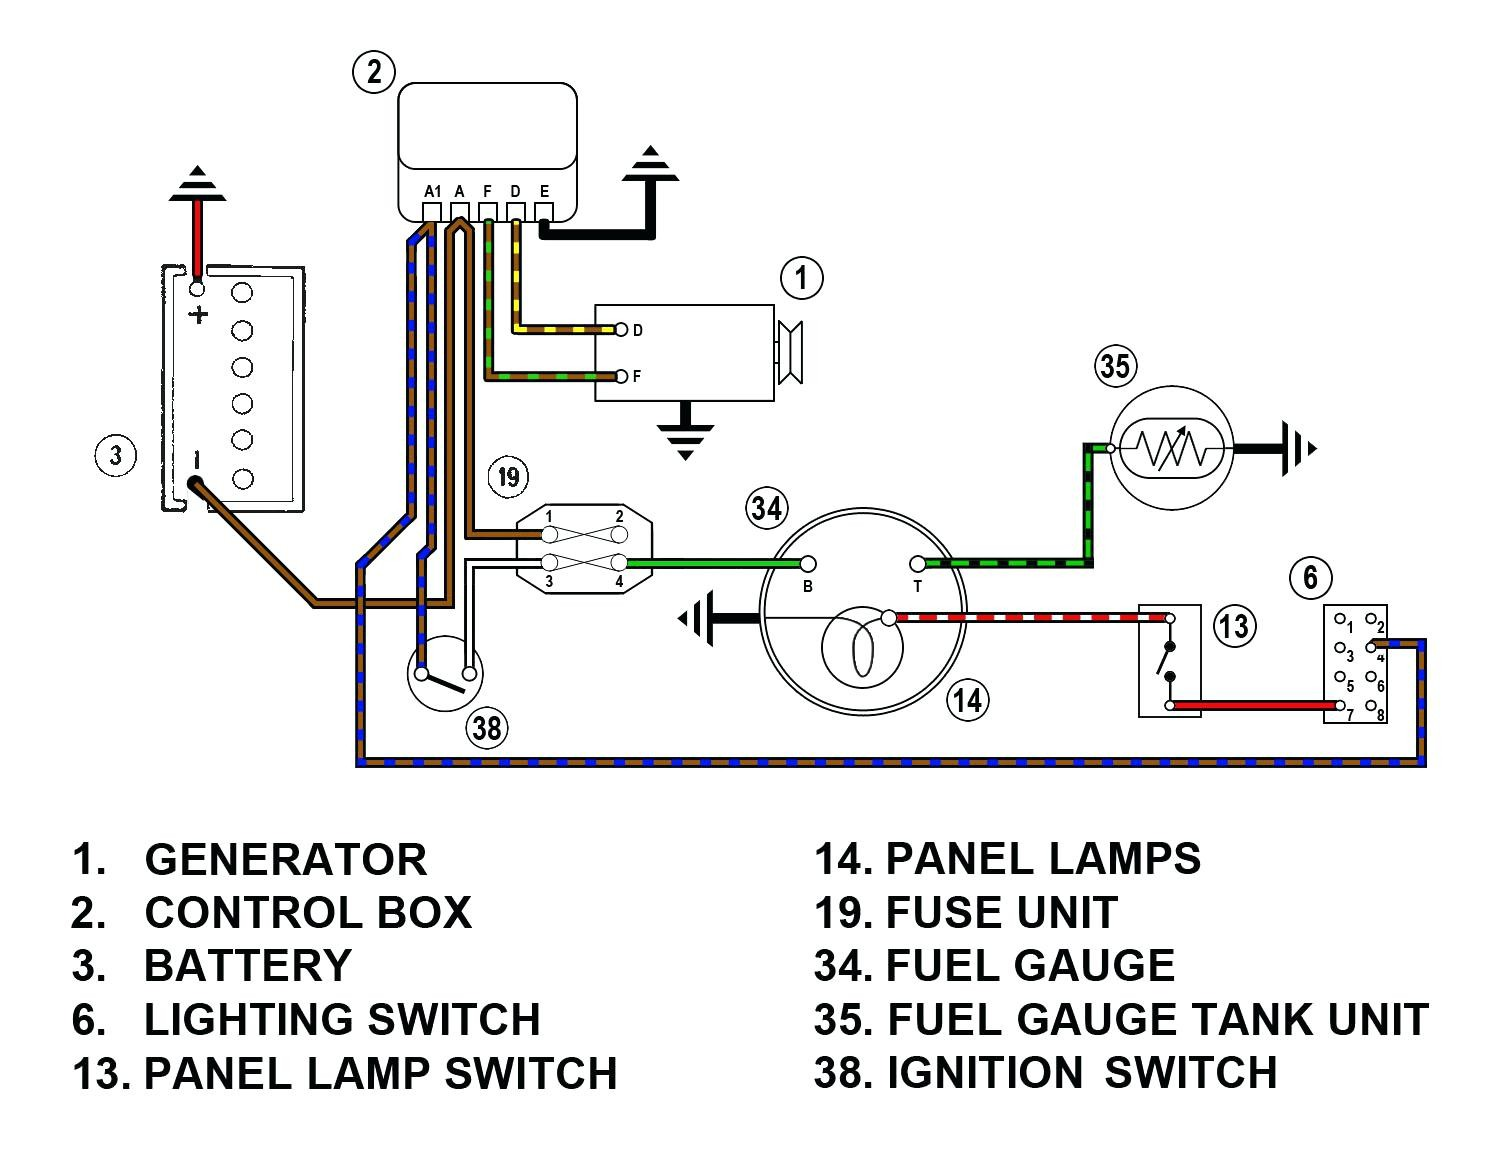 Solderless Wiring Diagram Electrical Diagrams Zakk Wylde Emg Inspirational Image Ford Schematic Collection